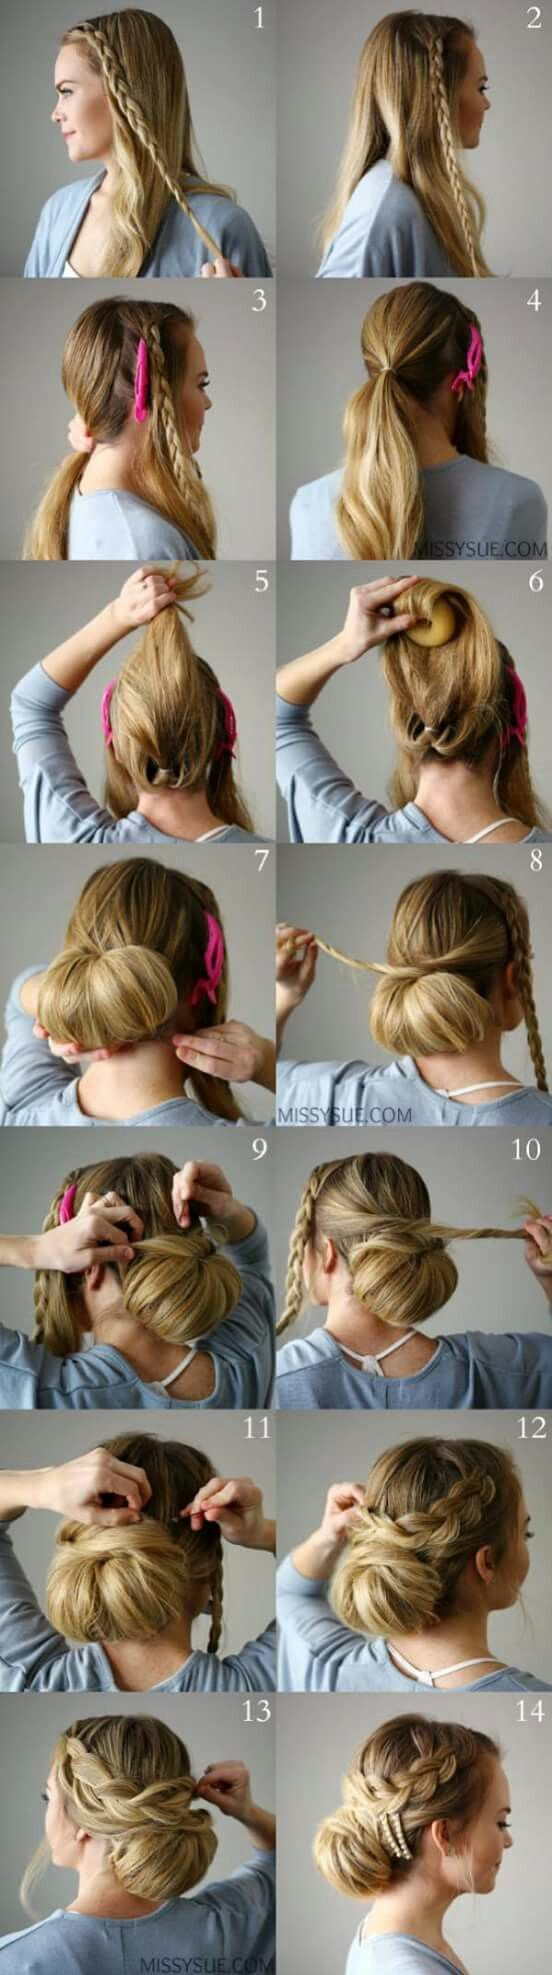 Lindo recogido easy upstyles pinterest hair style updos and